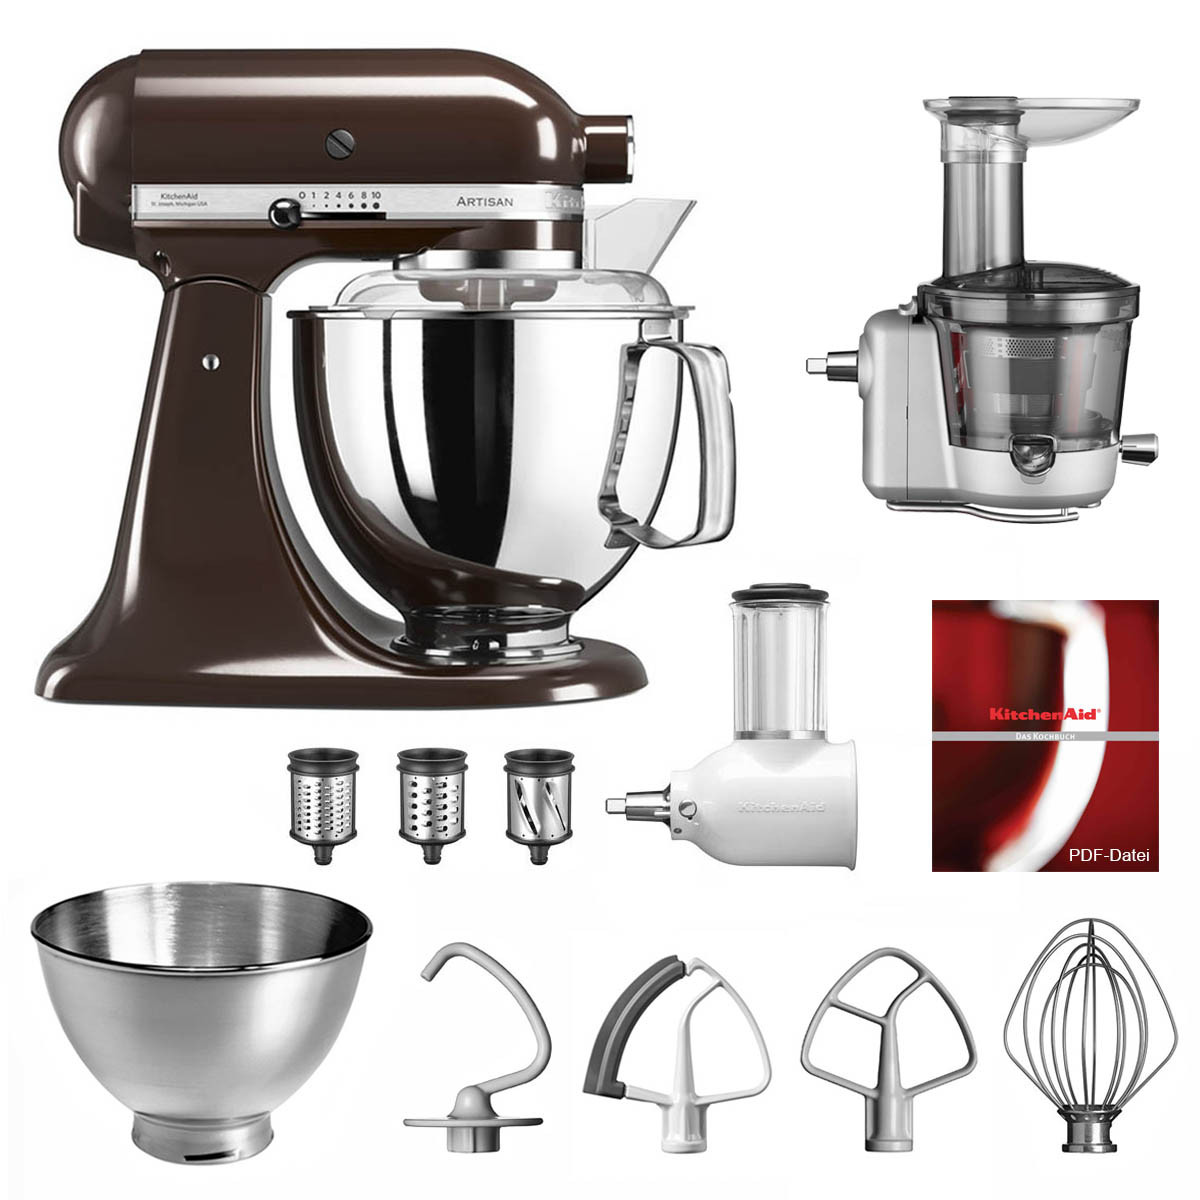 KitchenAid Küchenmaschine 175PS Entsafter Vital-Set espresso